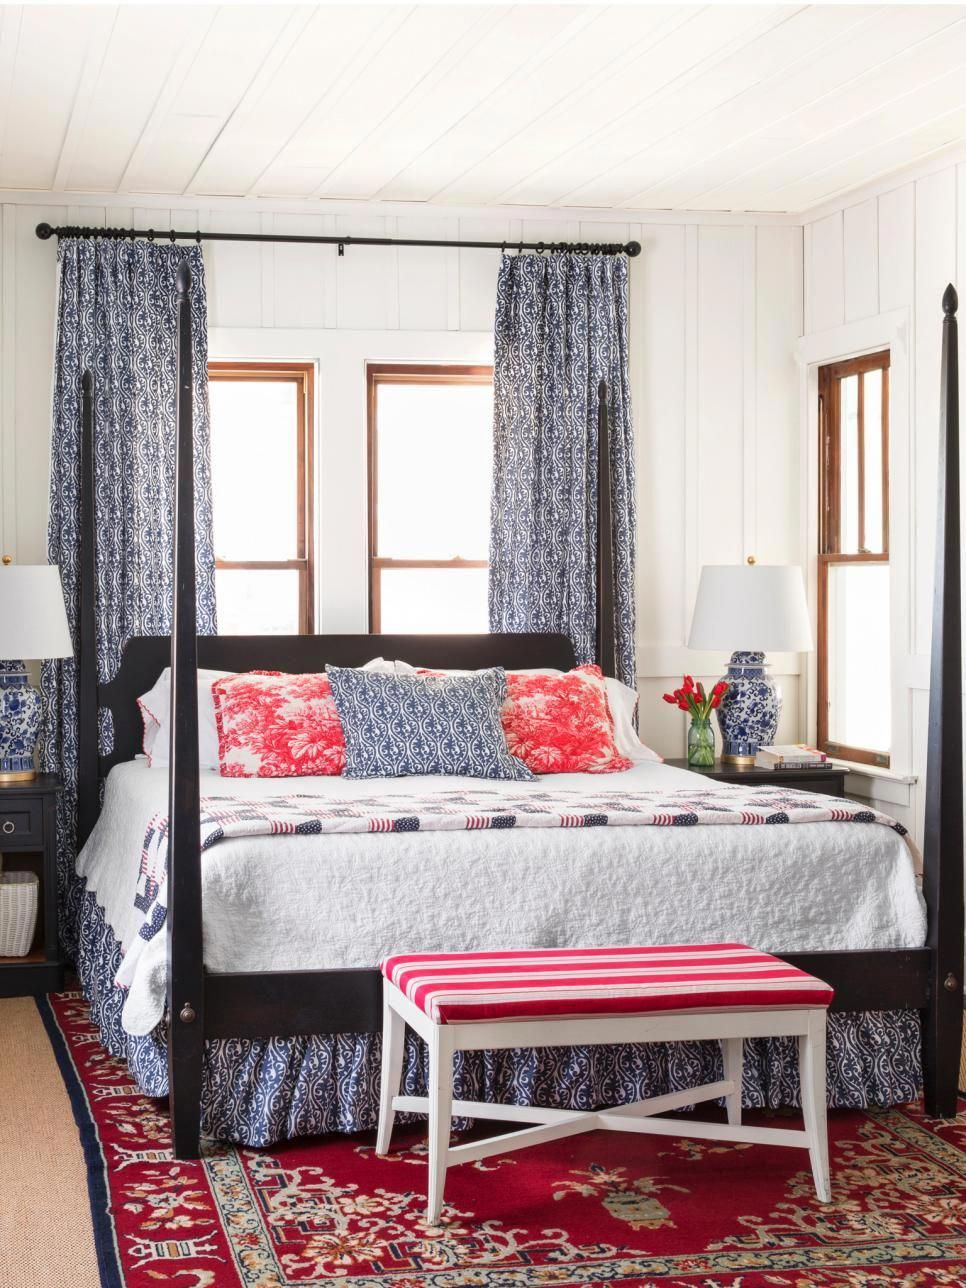 Bed head against window  beach cottage bargain decorating  interior design styles and color